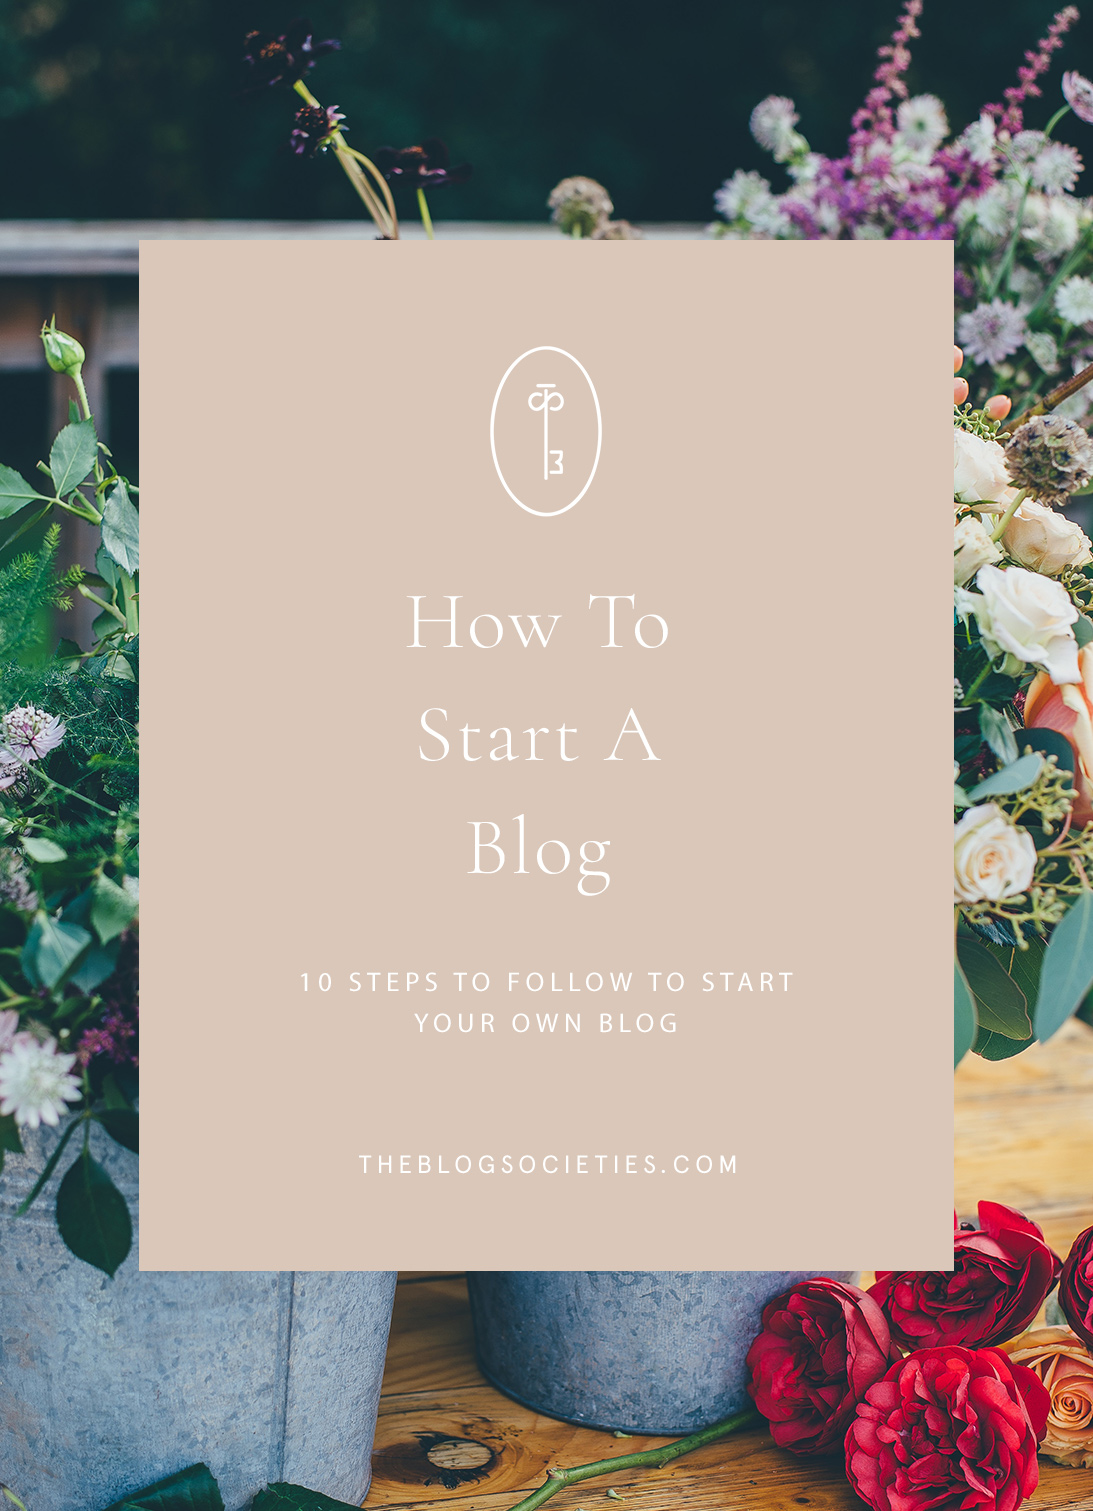 How To Start A Blog In 10 Easy Steps - The Blog Societies | How To Start A Blog In 10 Easy Steps featured by popular blogging community, The Blog Societes